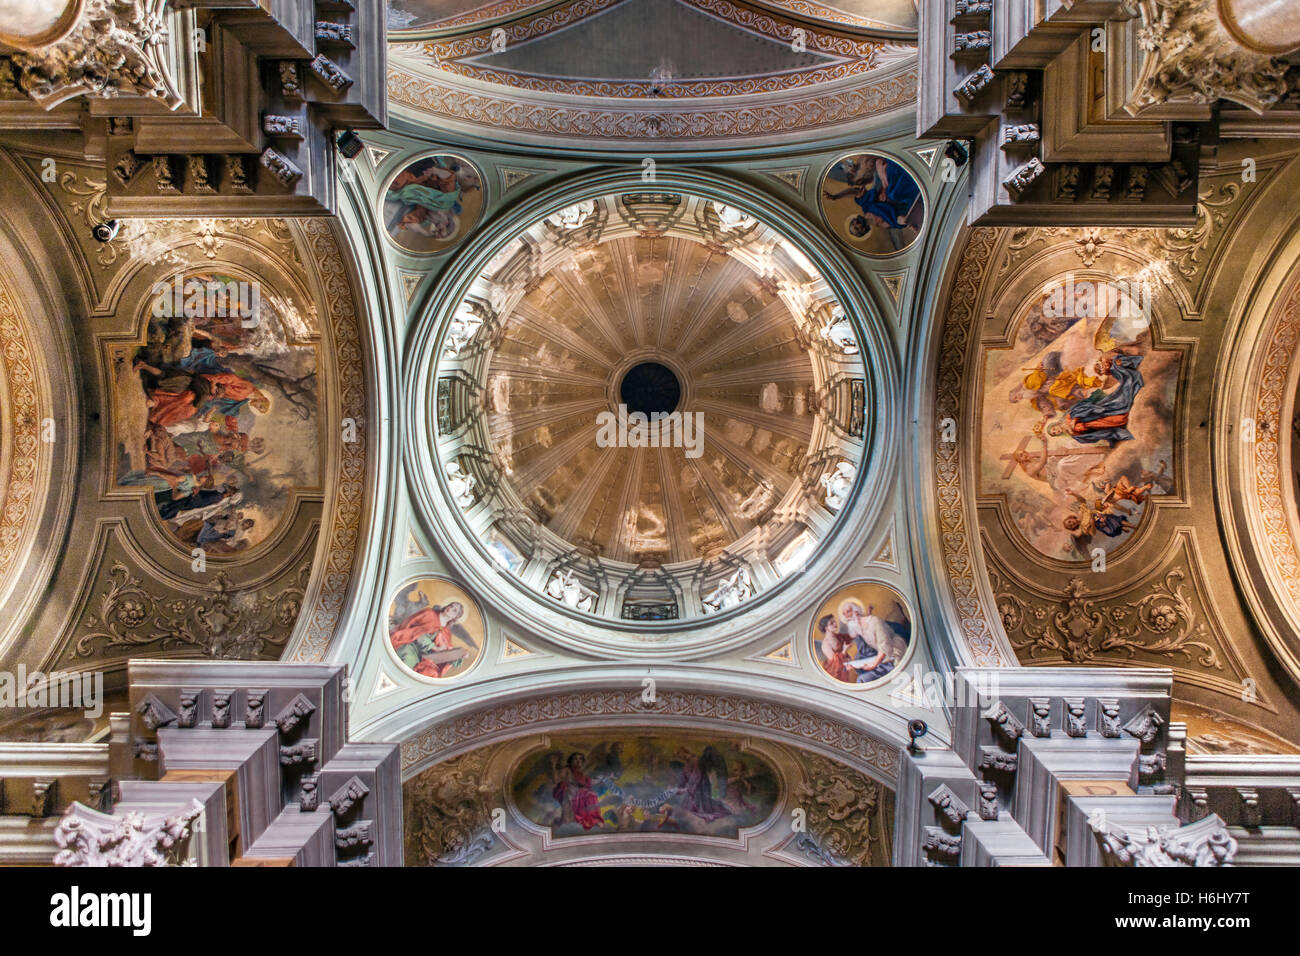 Ornate ceiling of the church of Saint John the Baptist in Bra, a city in the Piedmont region of northern Italy. - Stock Image